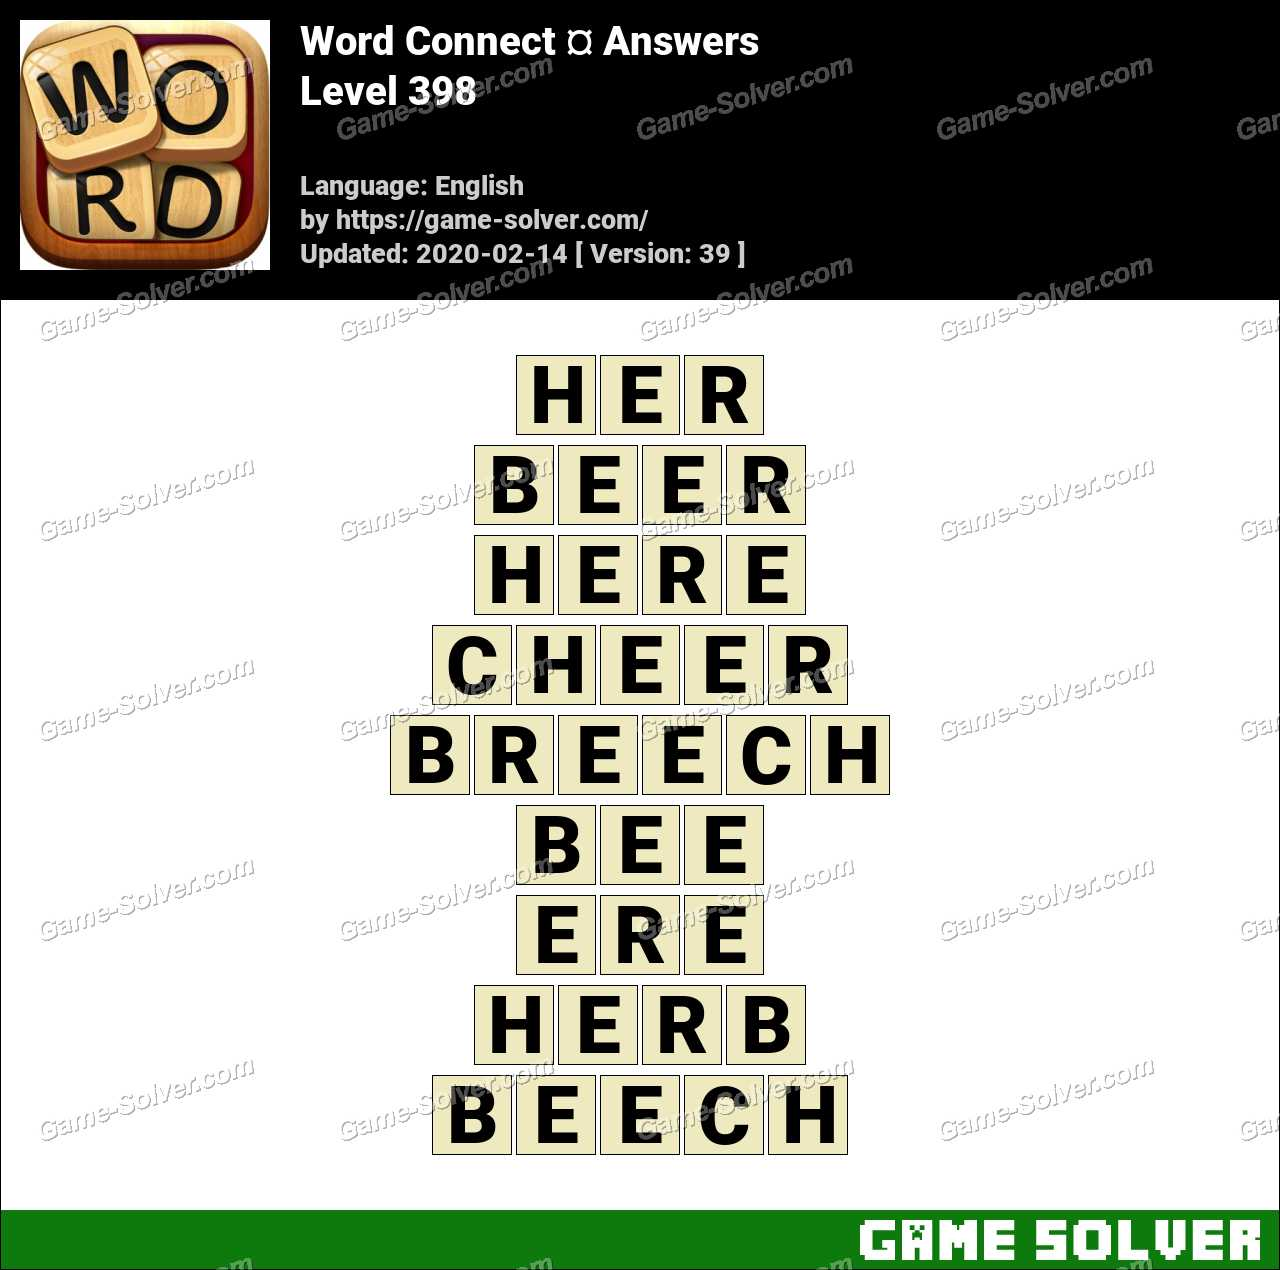 Word Connect Level 398 Answers